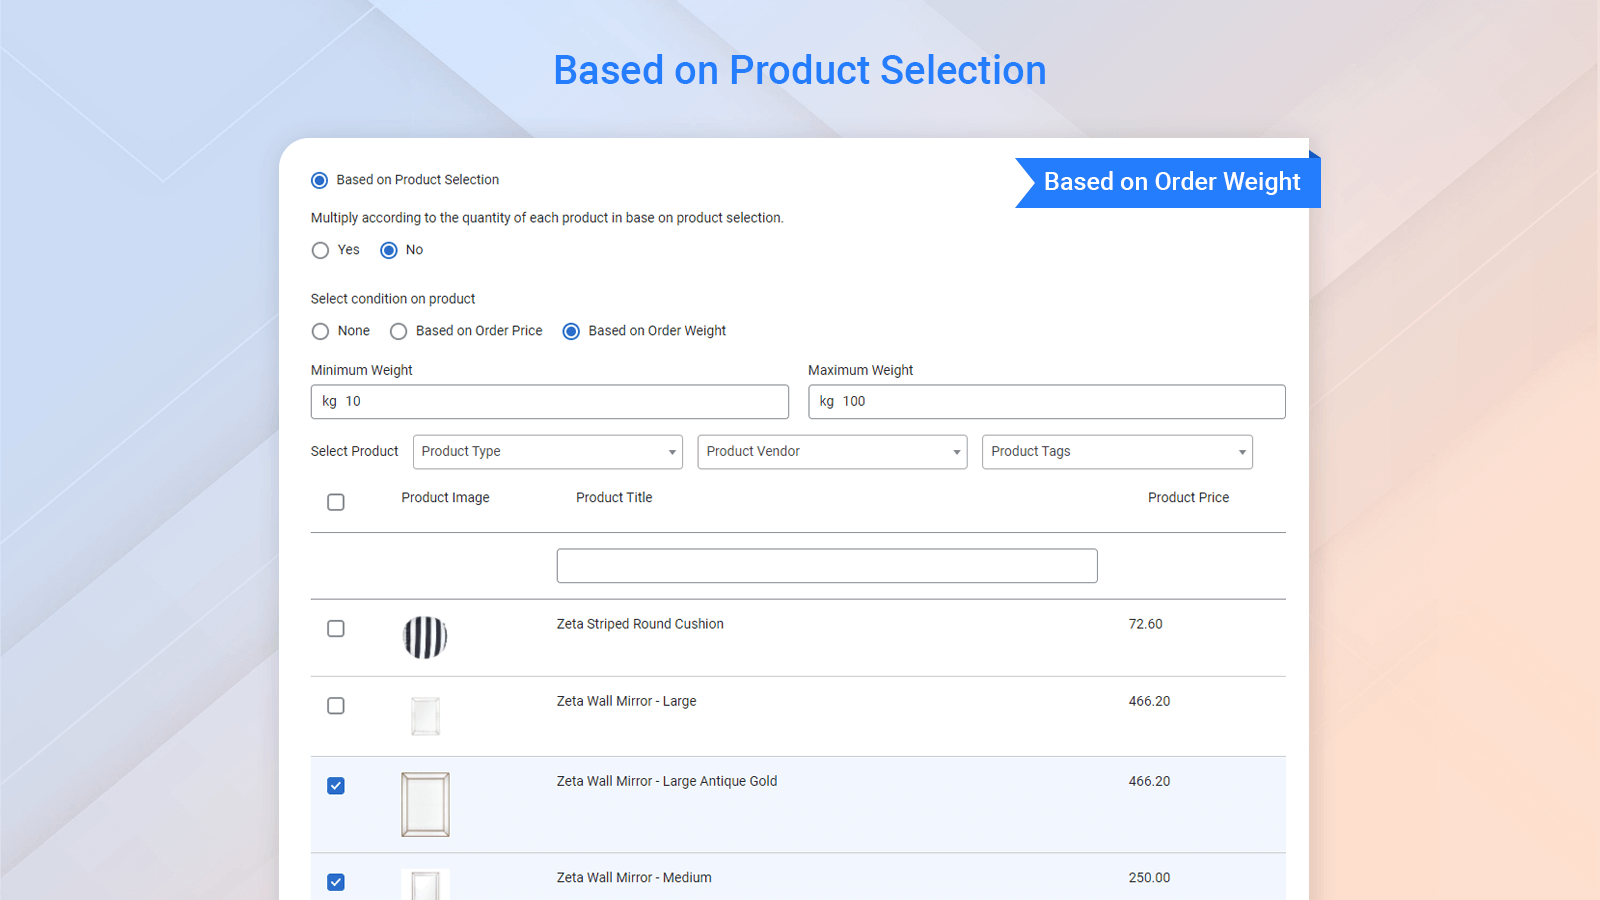 Shipping based on product selection with order weight